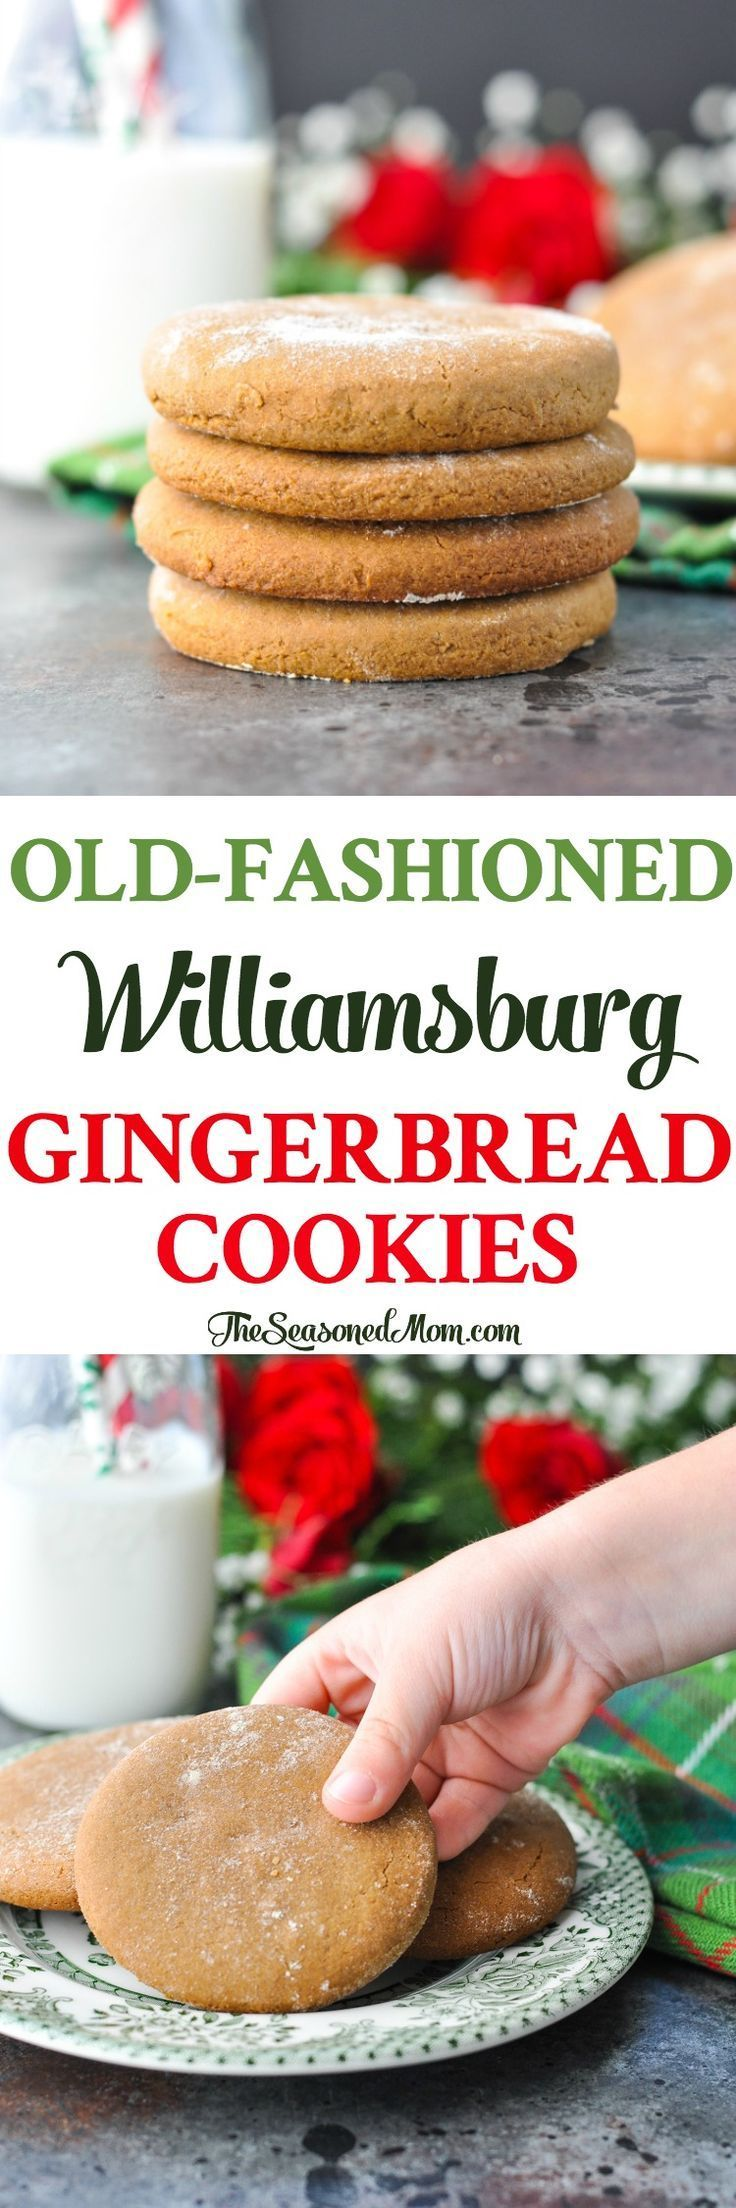 These simple and delicious Old-Fashioned Williamsburg Gingerbread Cookies are the perfect classic Christmas cookies! Christmas Recipes | Holiday Baking | Cookie Recipes #christmas #cookies #dessert